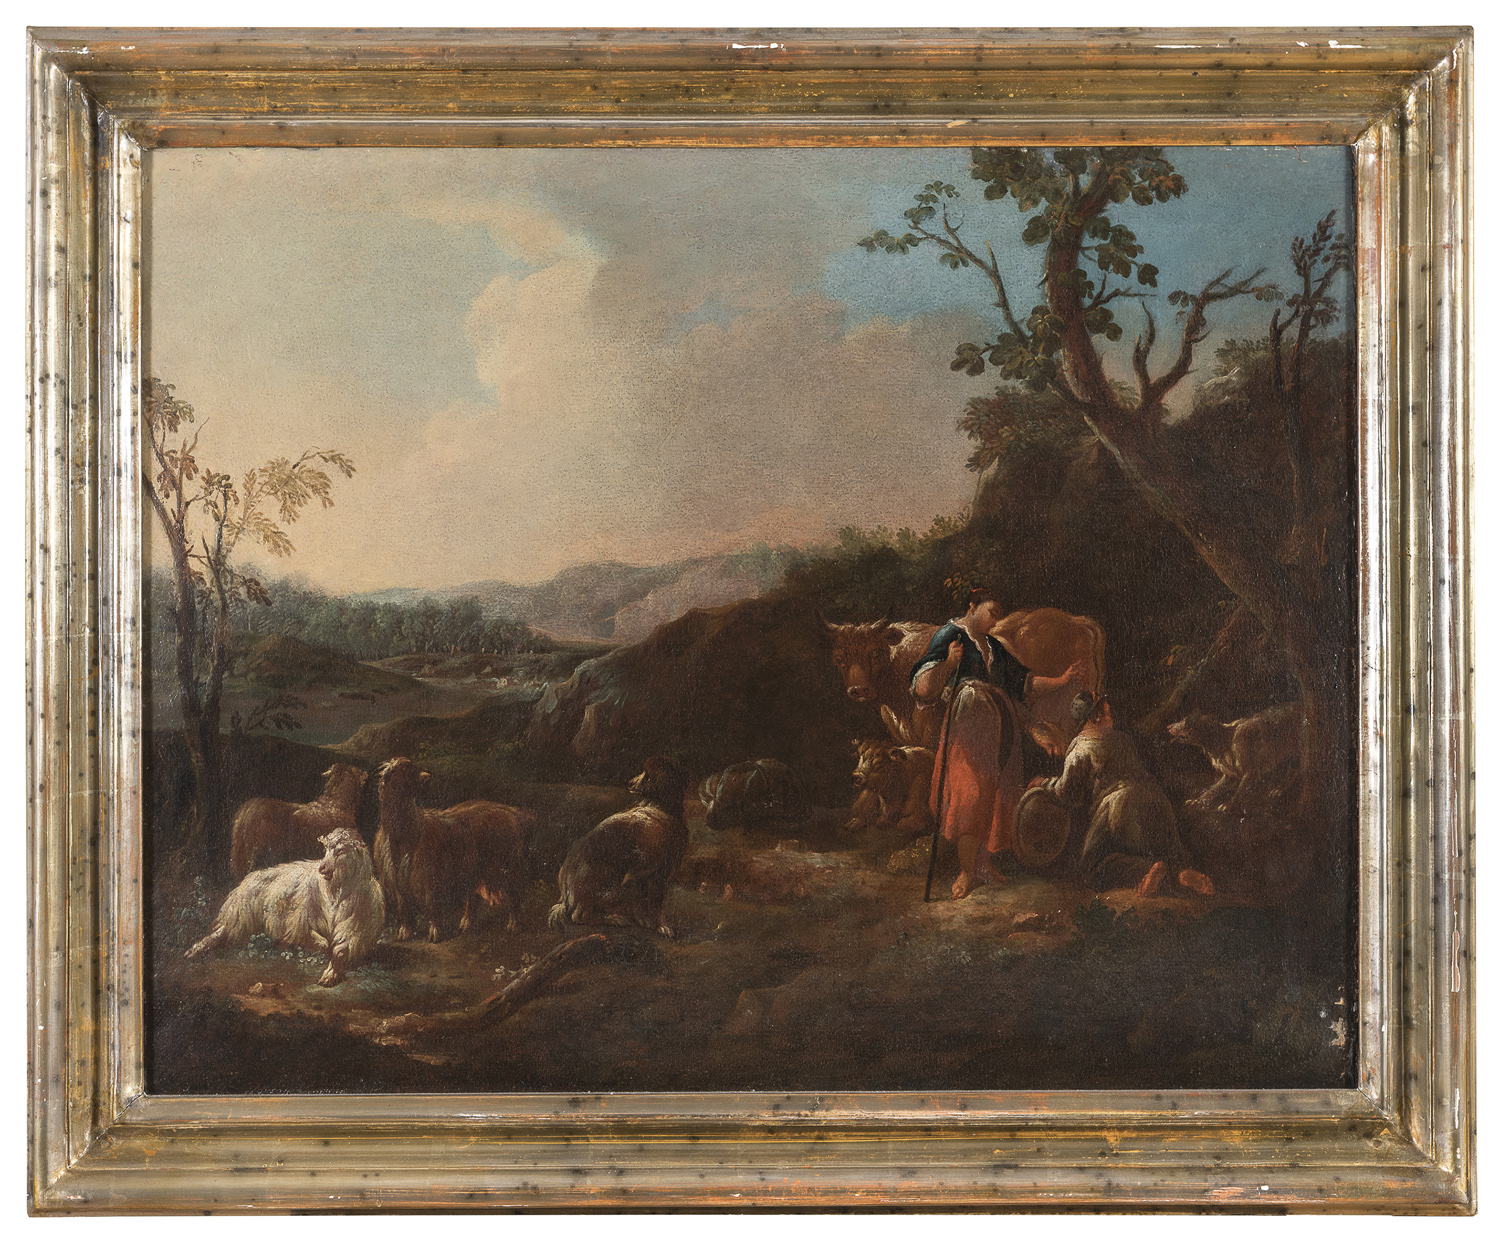 A PAIR OF VENETO OIL PAINTINGS 18th CENTURY - Image 2 of 2